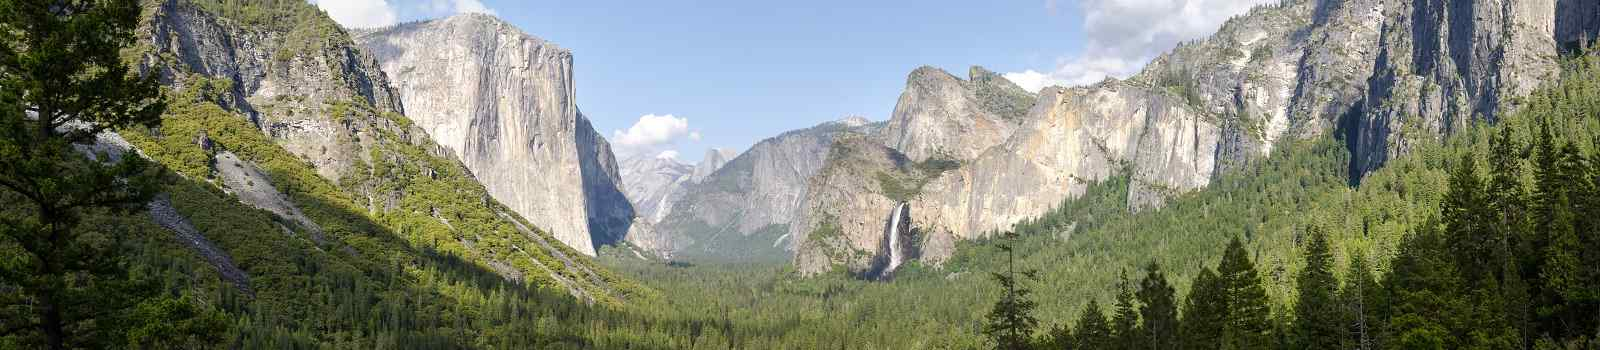 HOHE-PUNKT-WESTEN  Yosemite NationalPark with Bridalveil waterfall 111147029